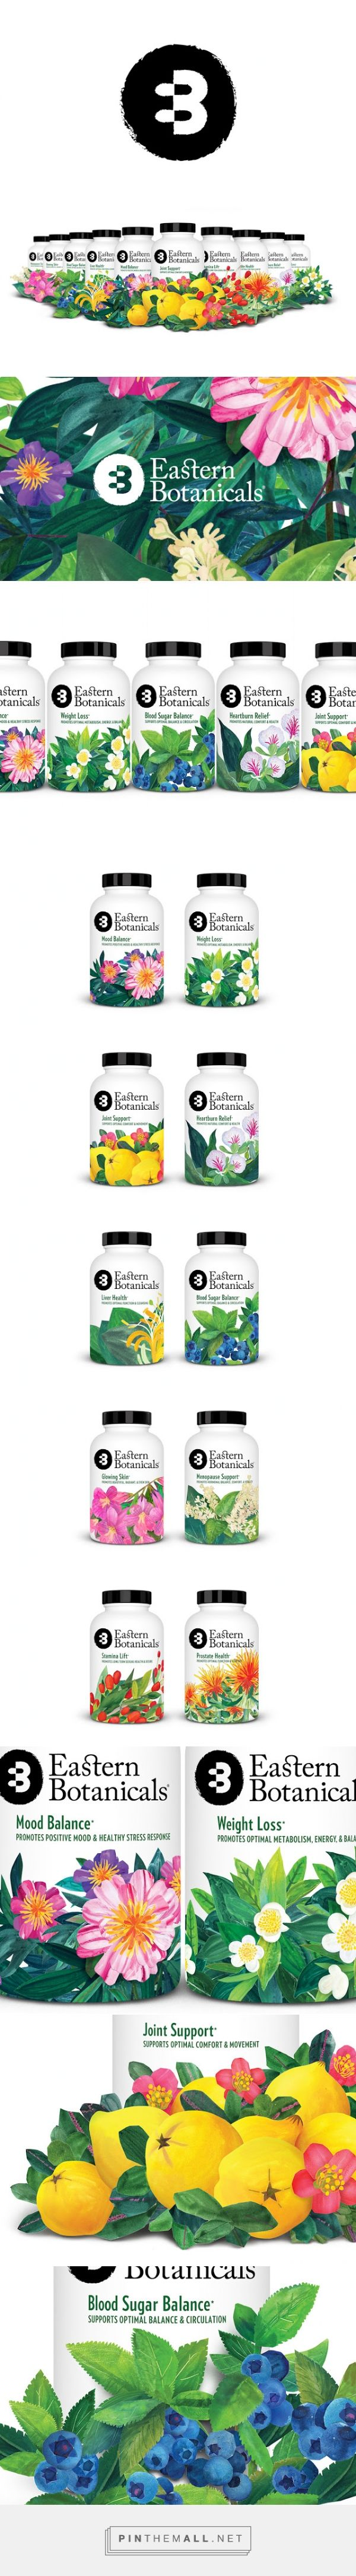 Eastern Botanicals Herbal #Supplements #packaging by Rice Creative - http://www.packagingoftheworld.com/2015/01/eastern-botanicals.html